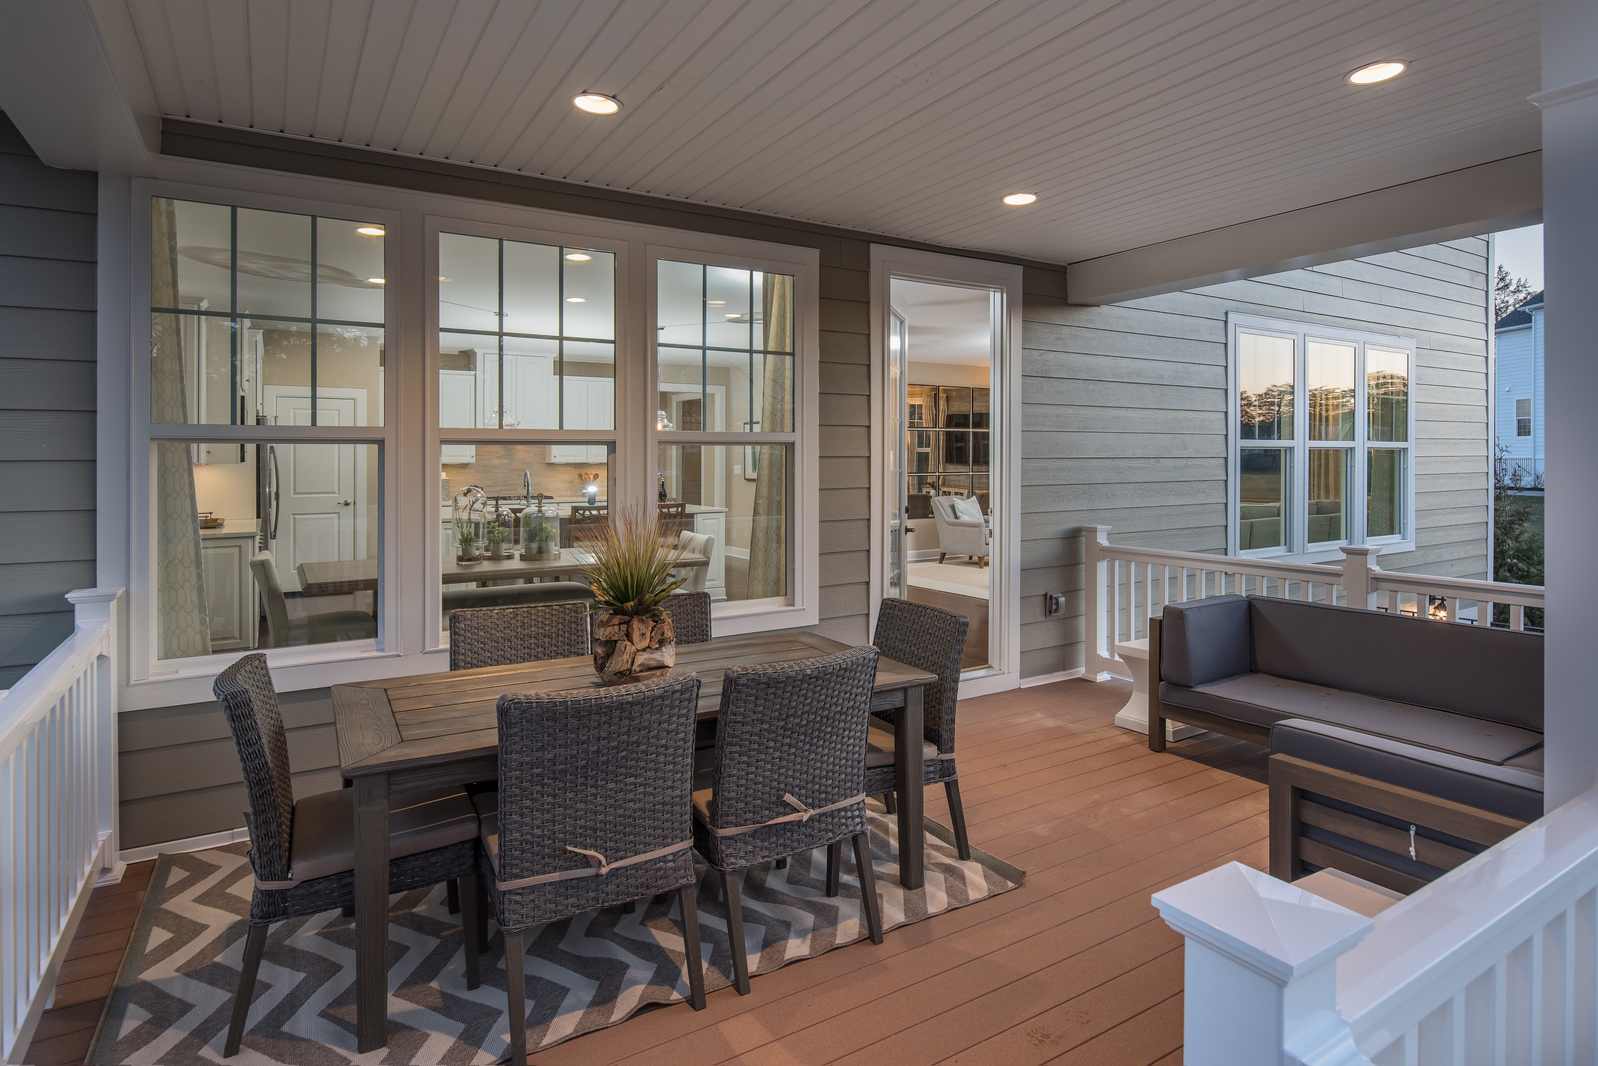 For your kiddo's imagination; home can be a medieval castle, space station or jungle gym! And a rainy day won't dampen their fun on the covered porch.